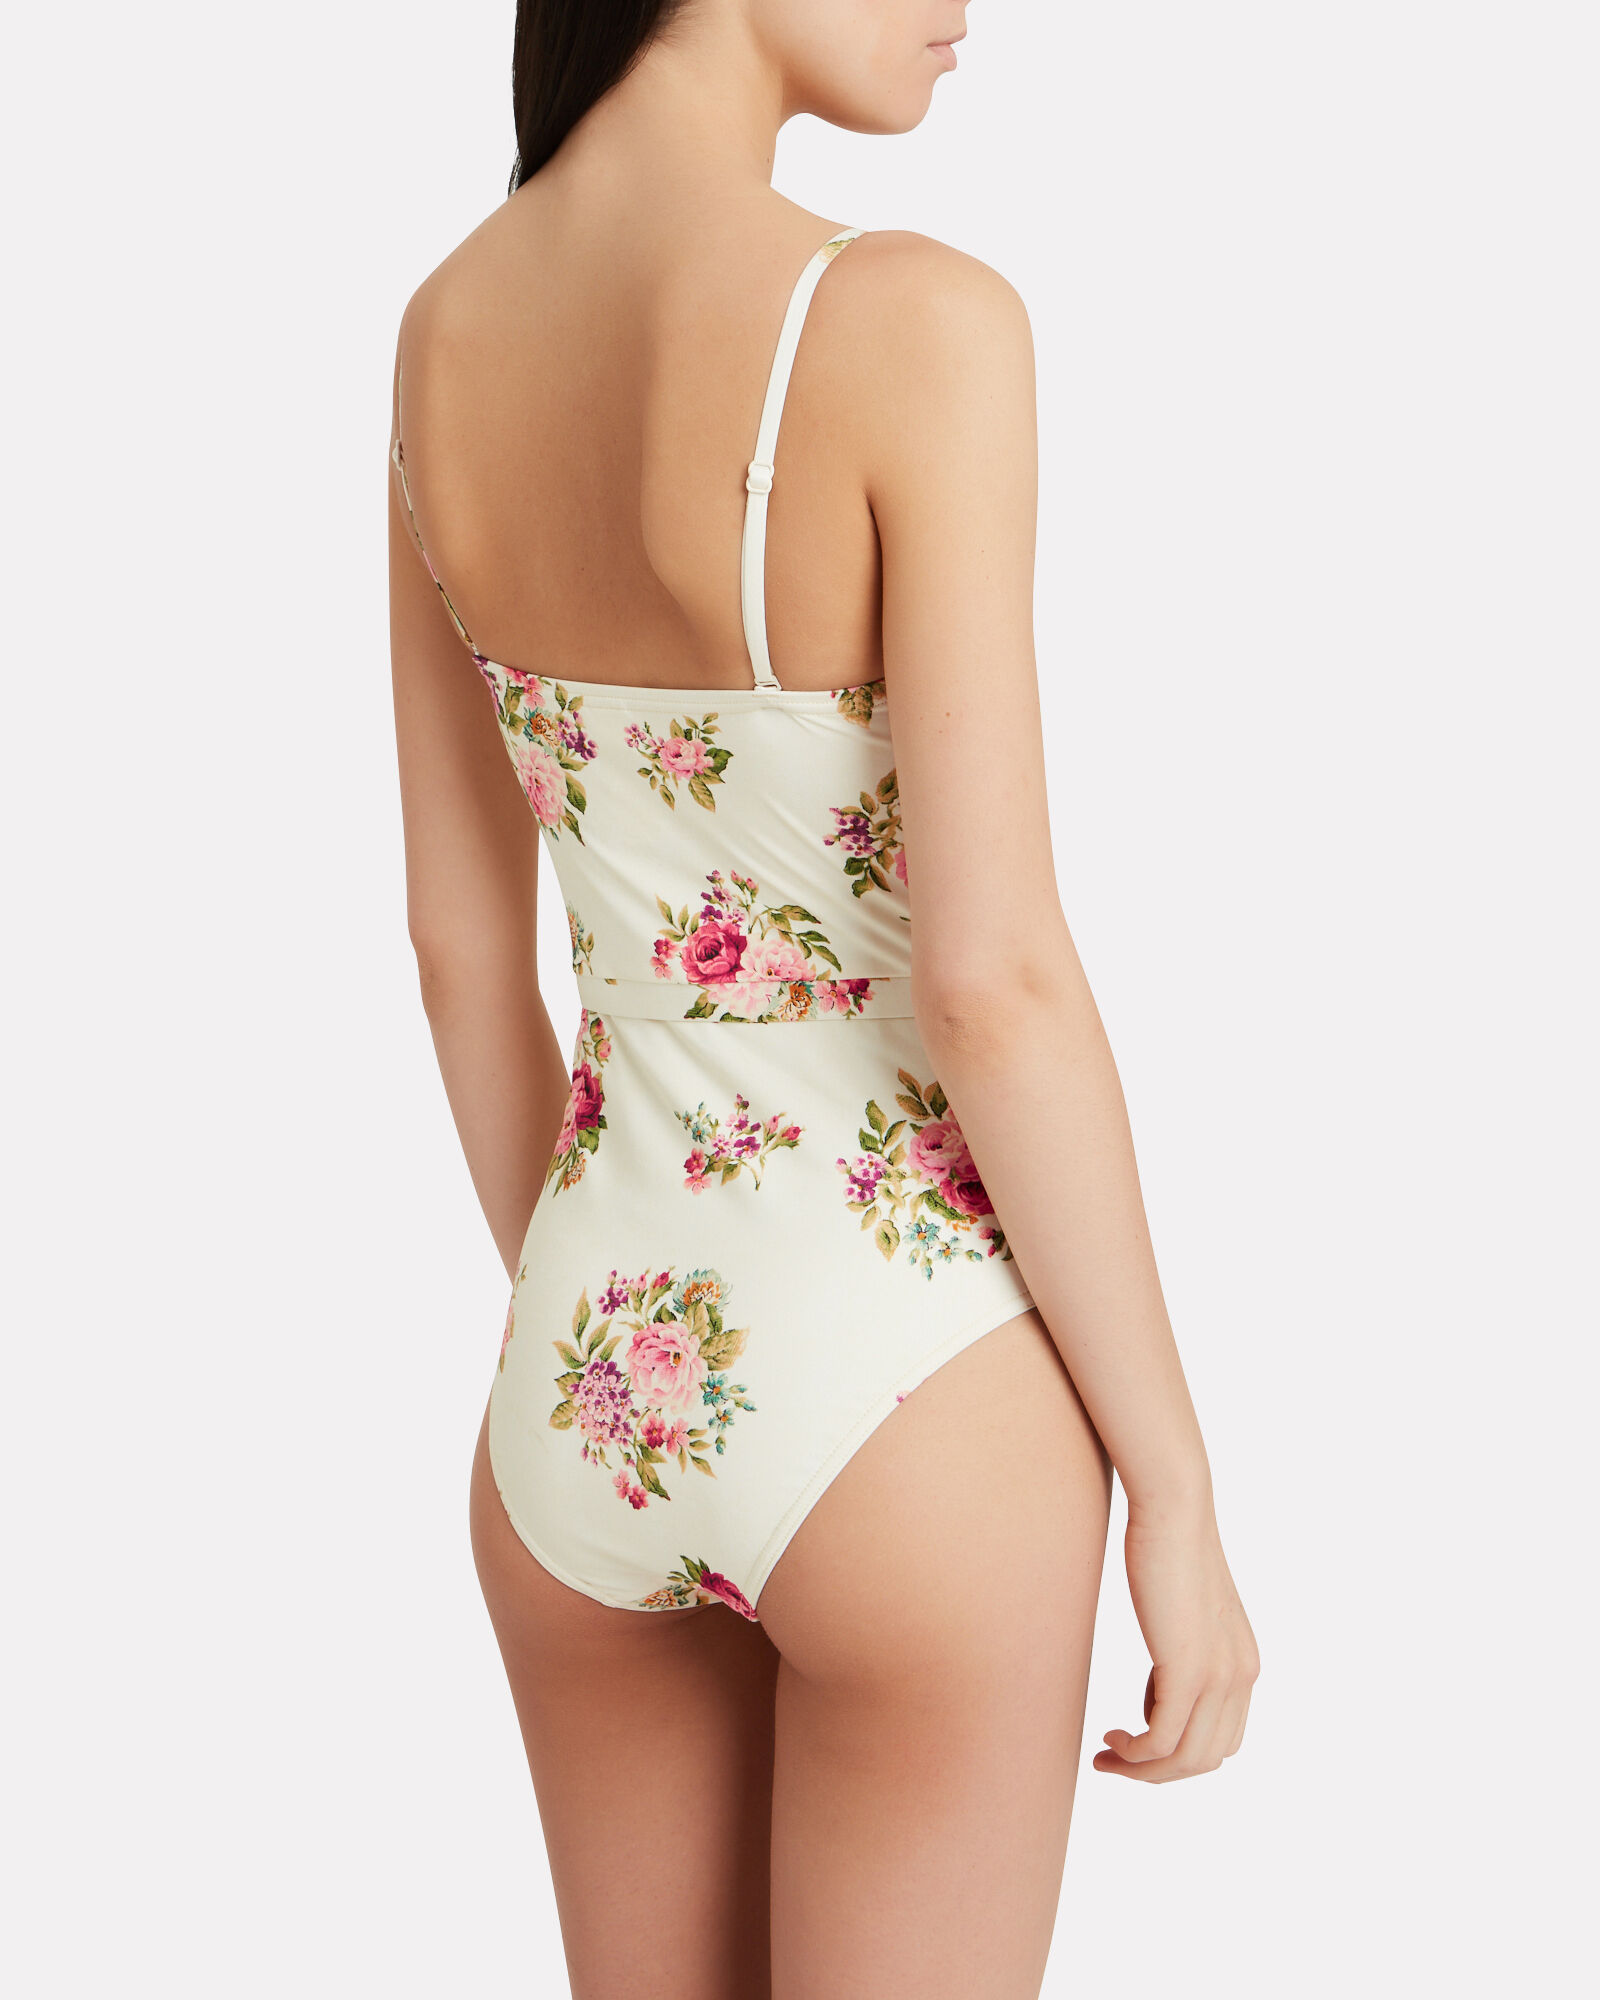 Honour Balconette One-Piece Swimsuit, MULTI, hi-res